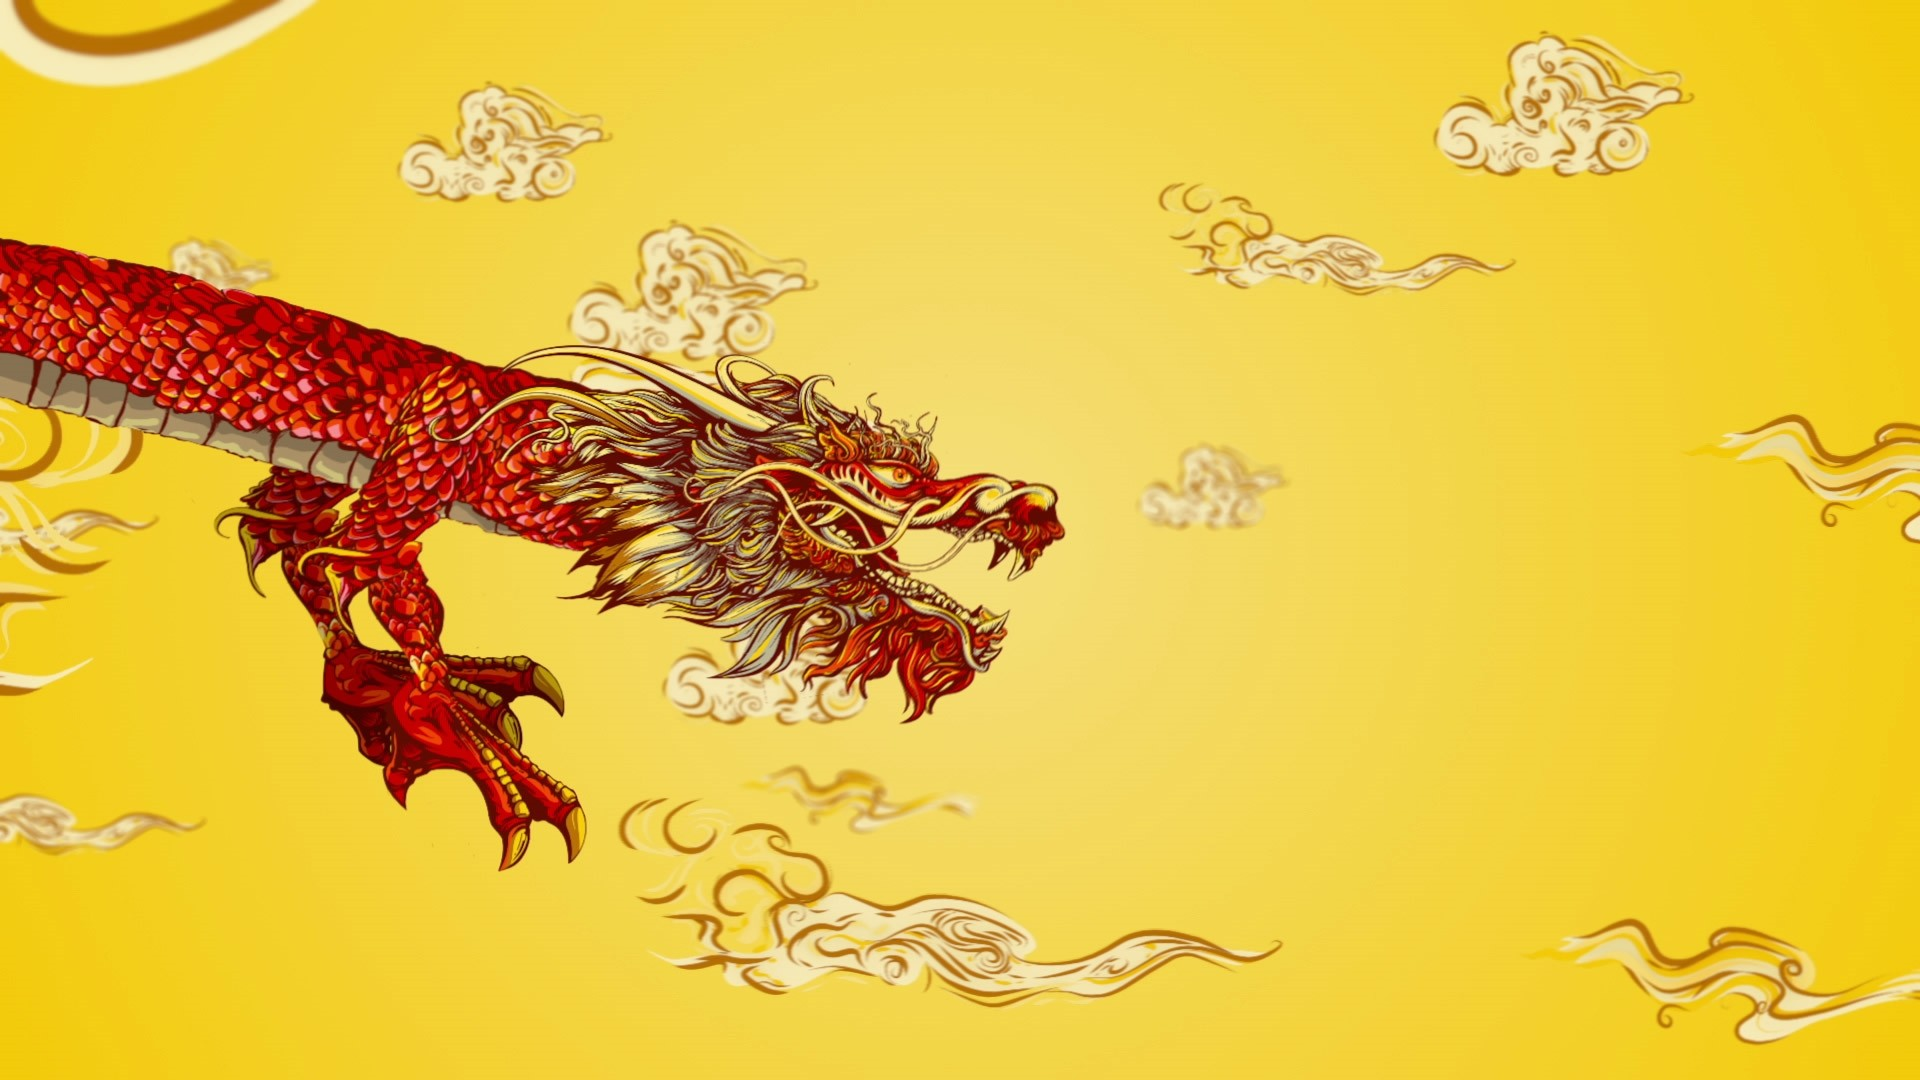 Chinese Dragon Free Wallpaper and Background